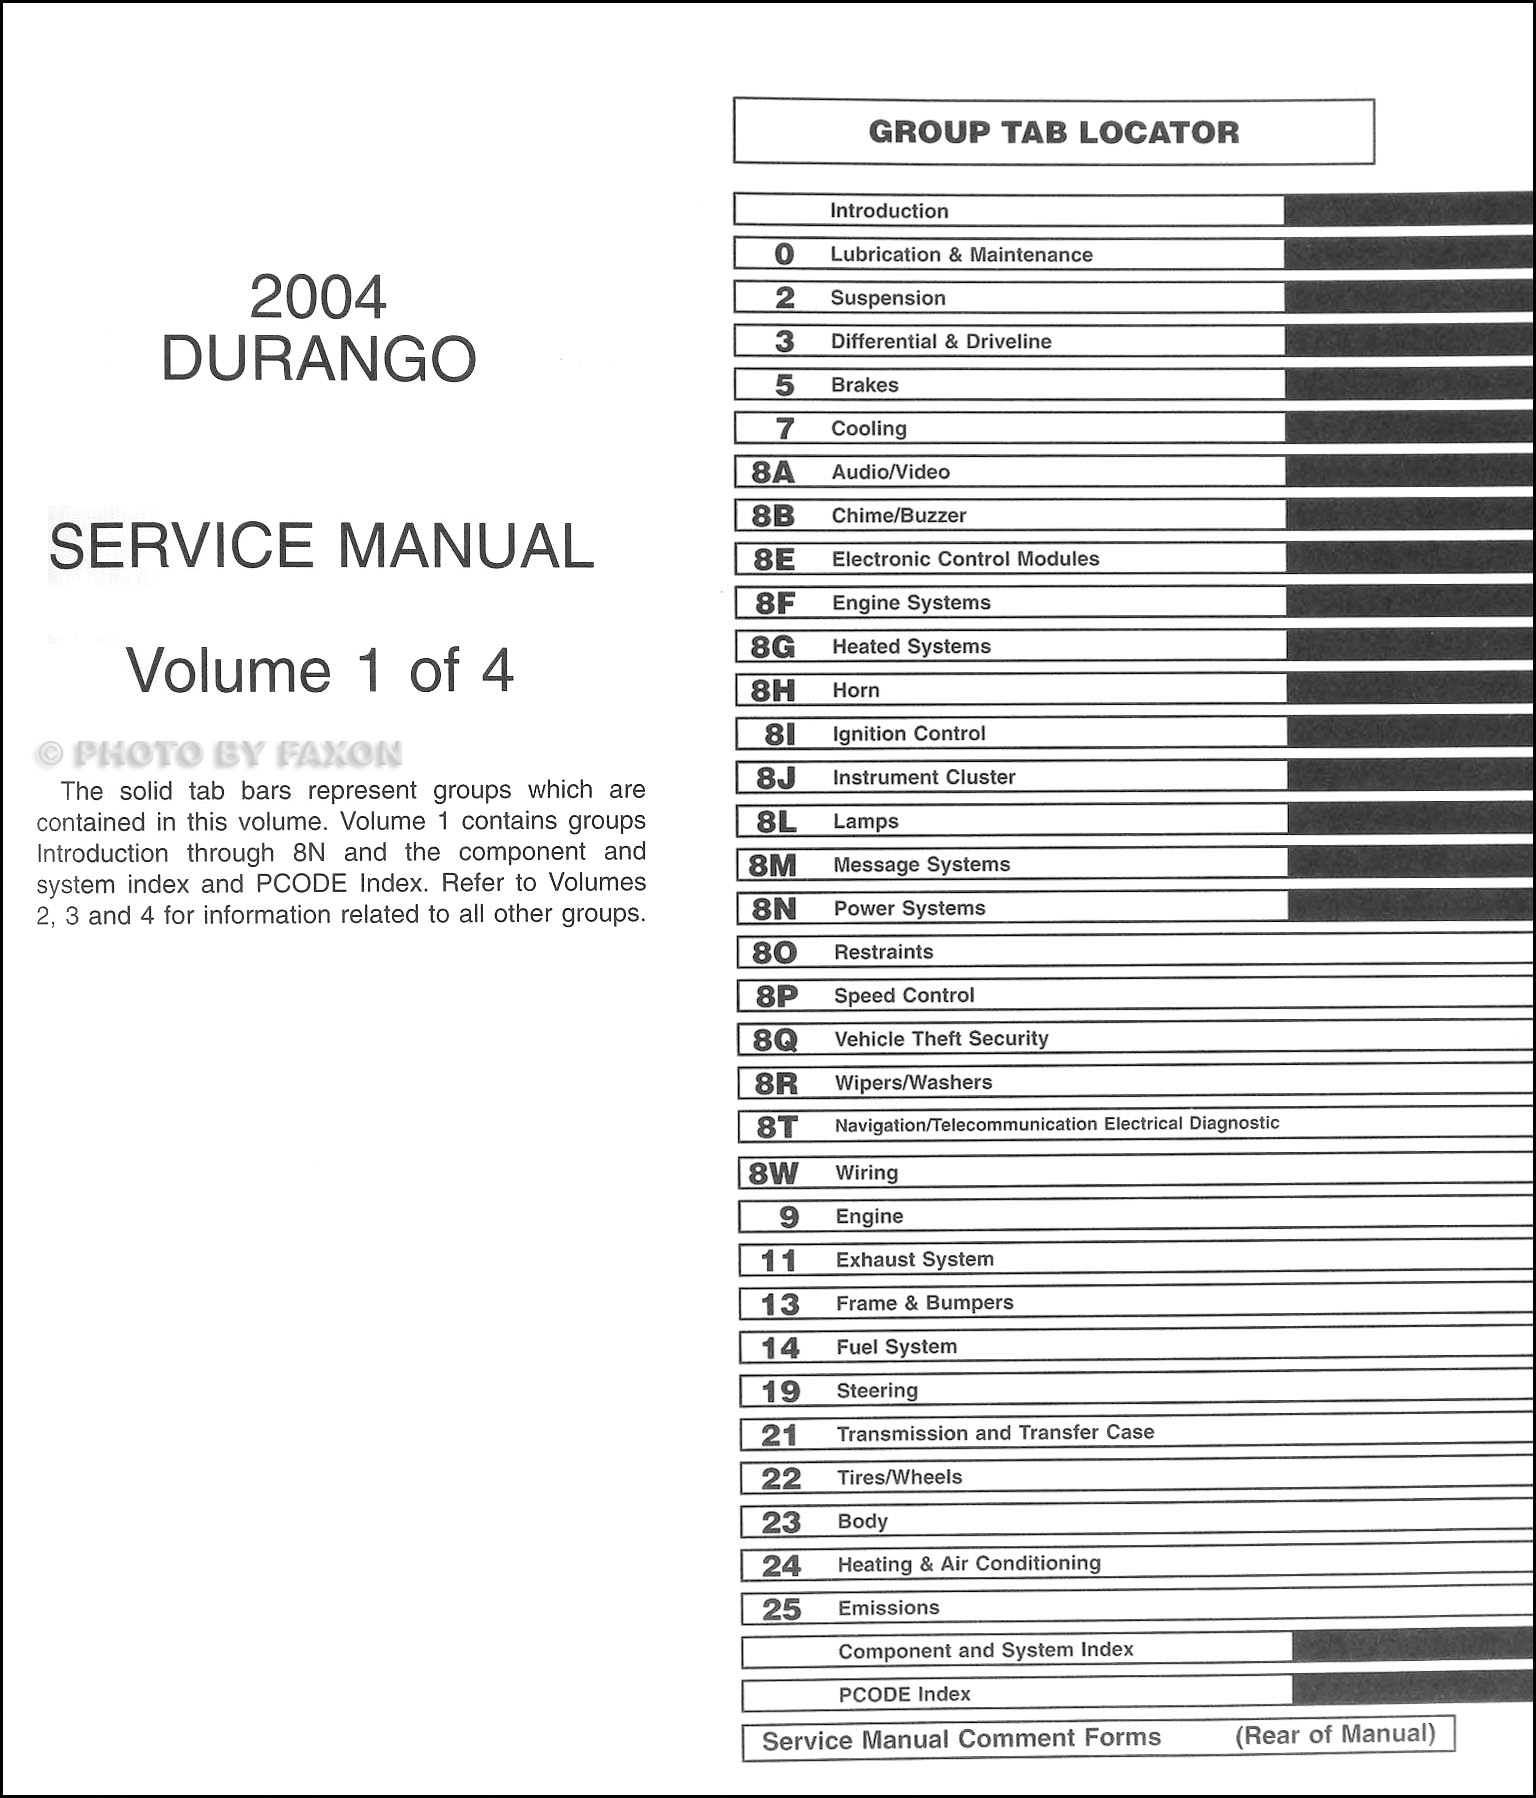 Service manual [2011 Dodge Durango Service Manual Free